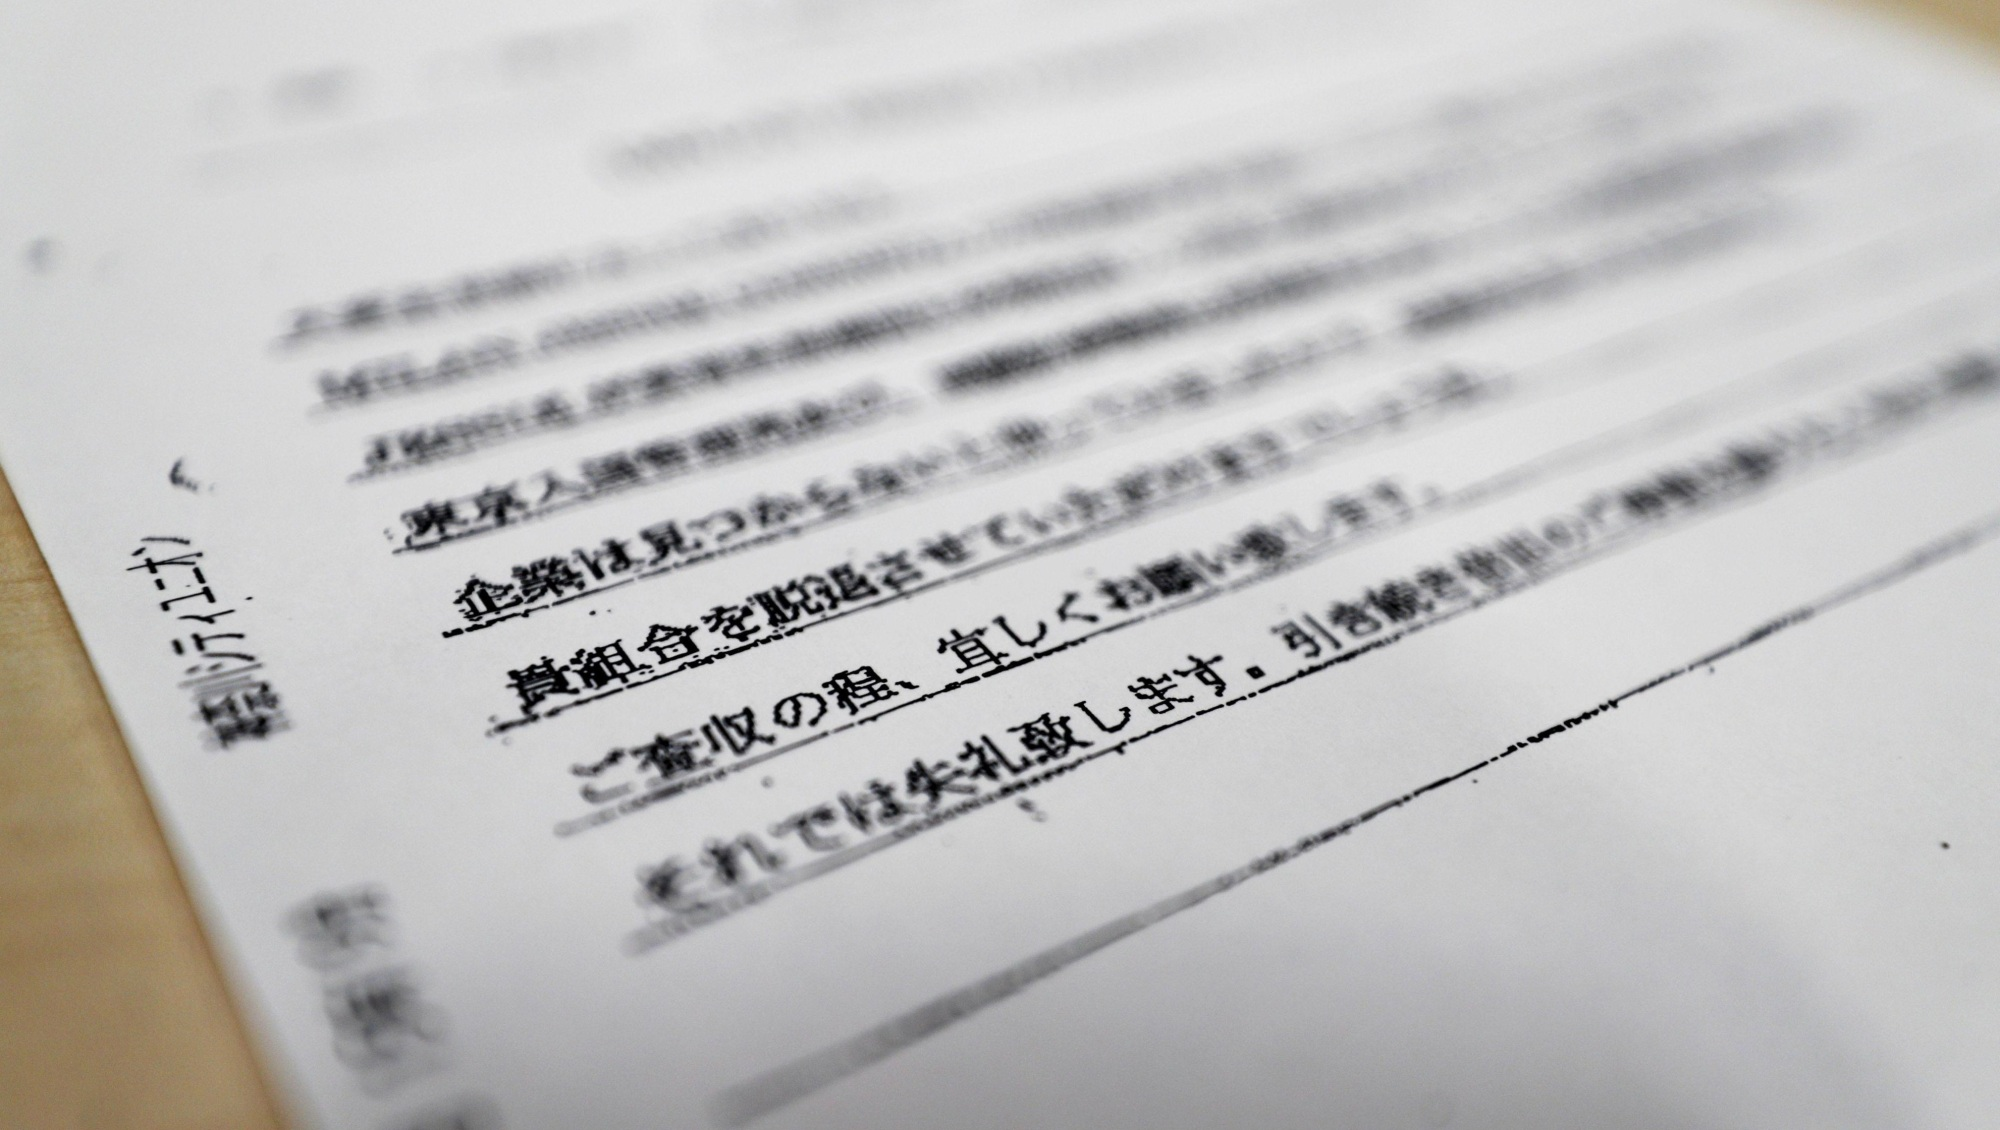 AHM Cooperation faxed this letter to the Kanagawa City Union to get four foreign trainees it was overseeing to leave the labor body. The trainees joined the union because they were being abused by the employer chosen for them under Japan's Technical Intern Training Program.   KYODO